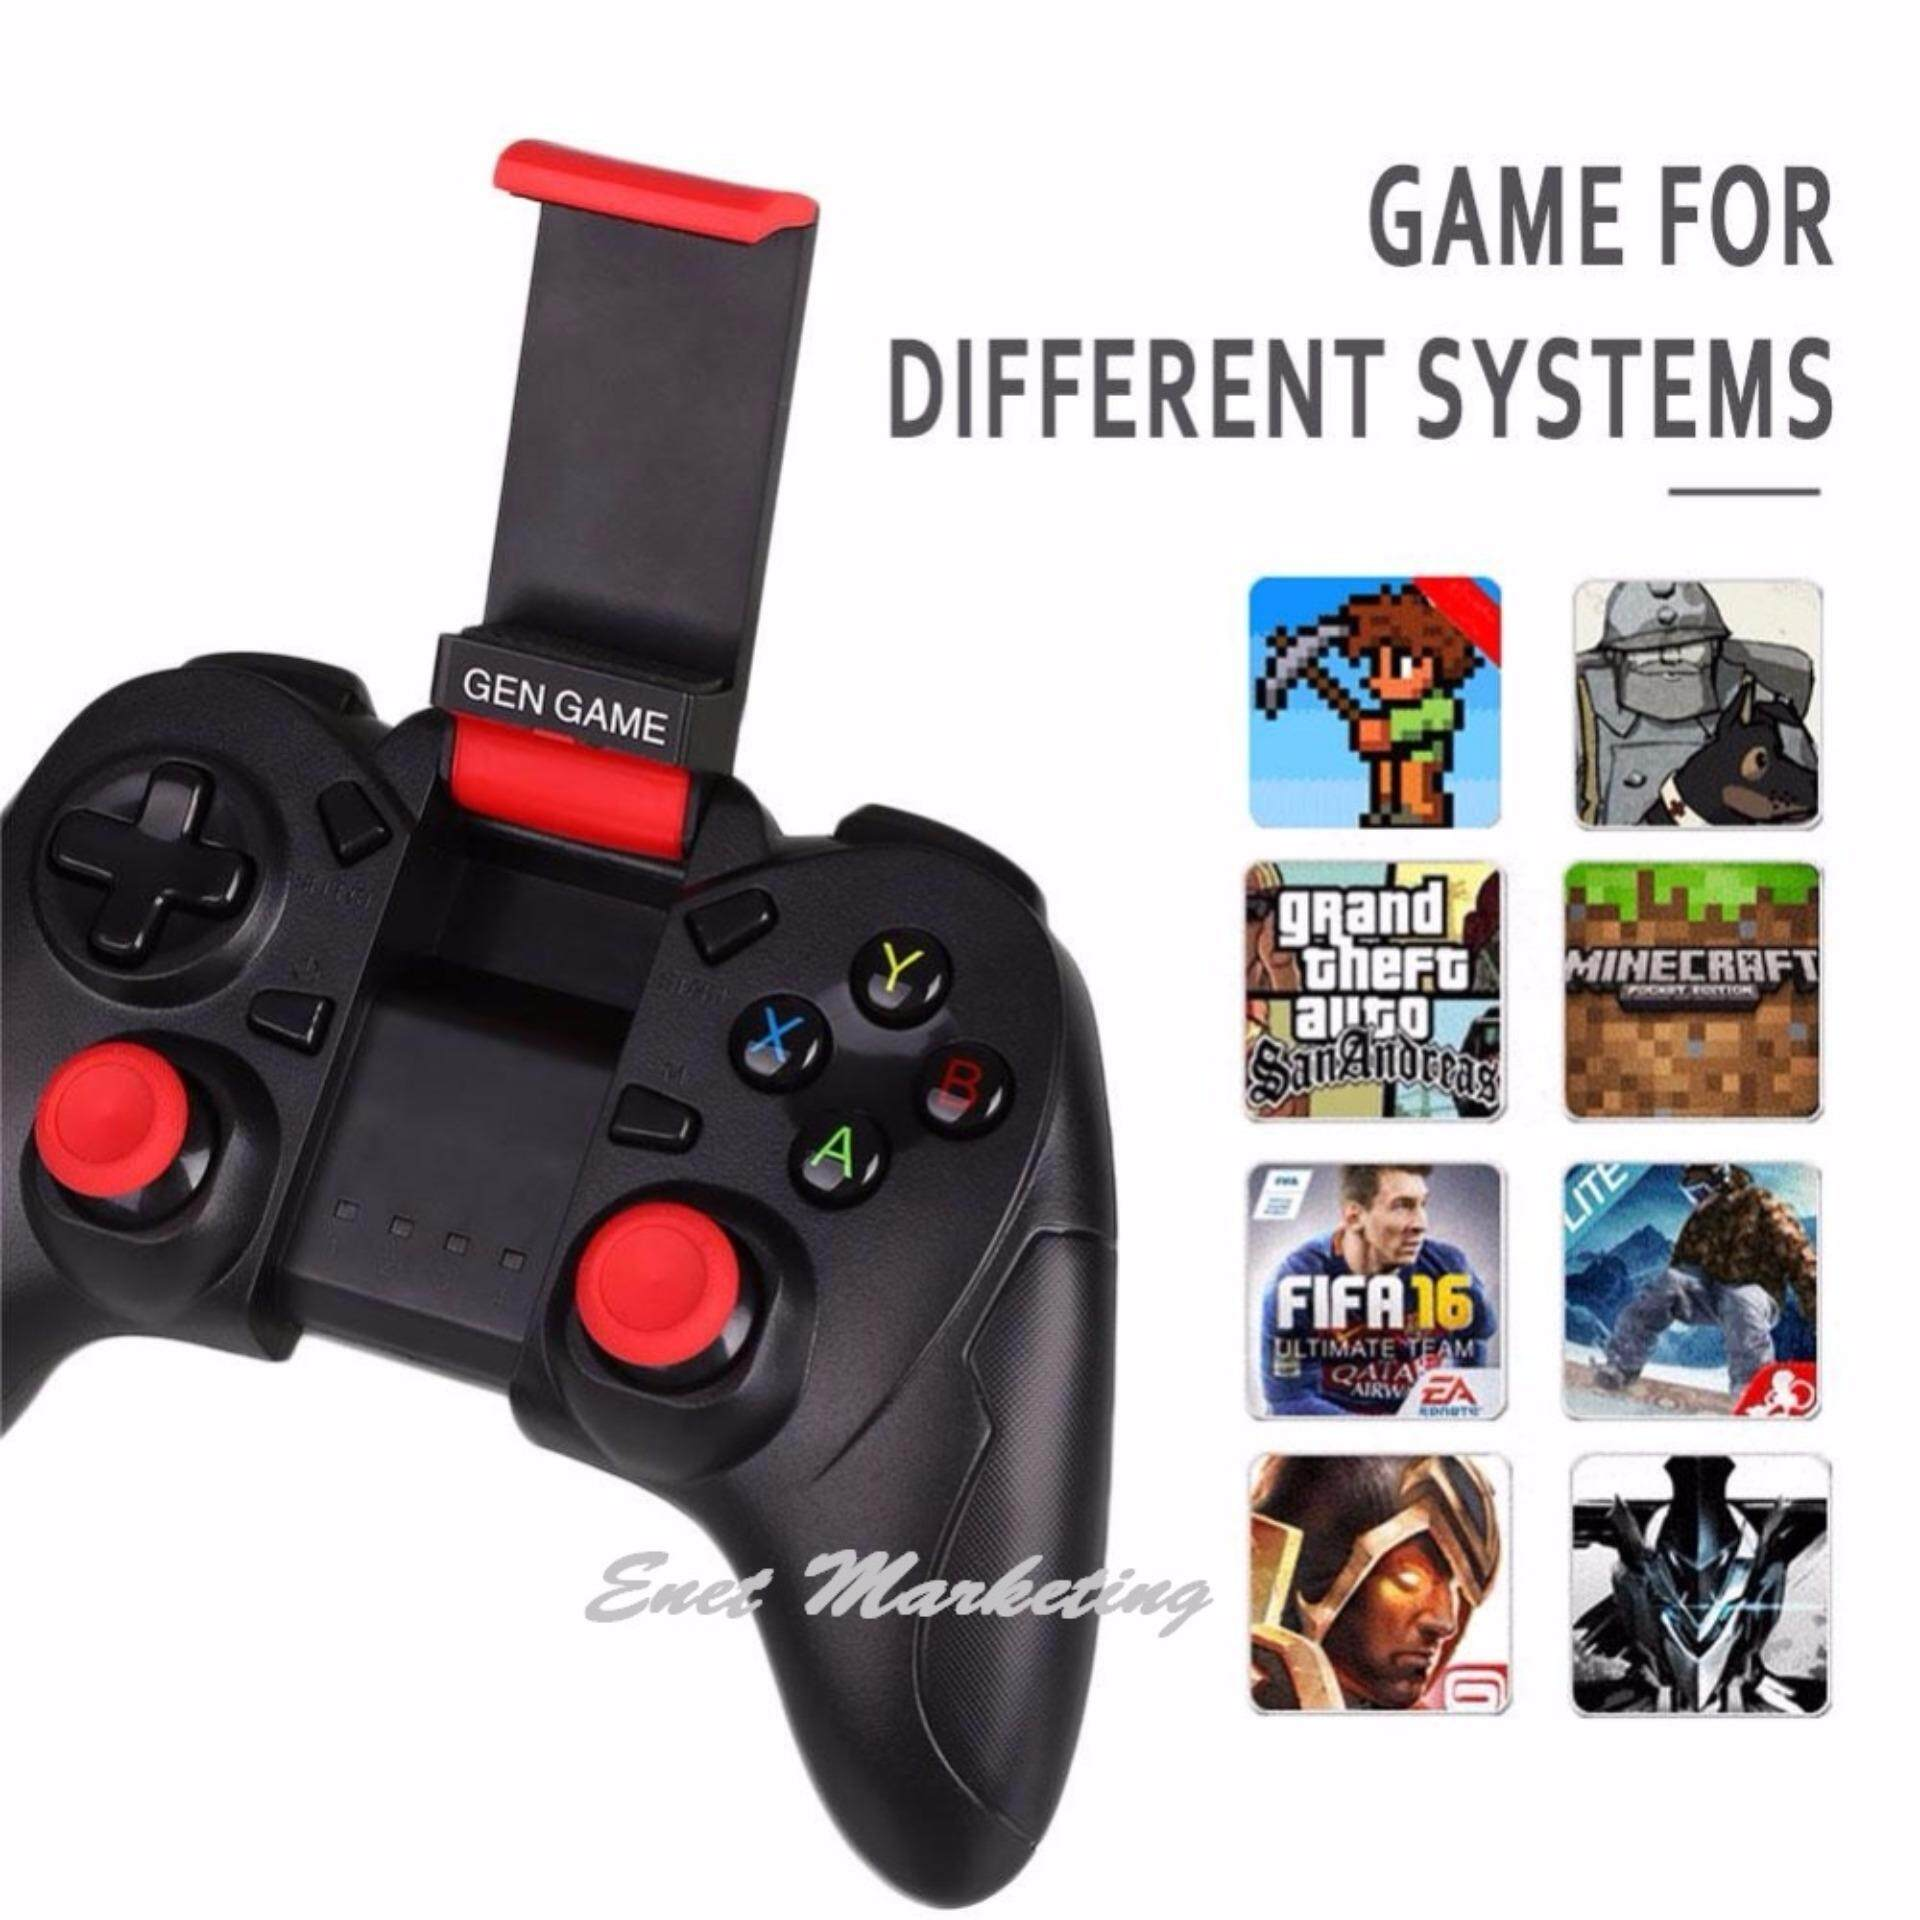 GEN GAME S6 Wireless Bluetooth Game Console Controller Gamepad Joystick with Clip Holder **Free x1 Fling Mini Joystick**